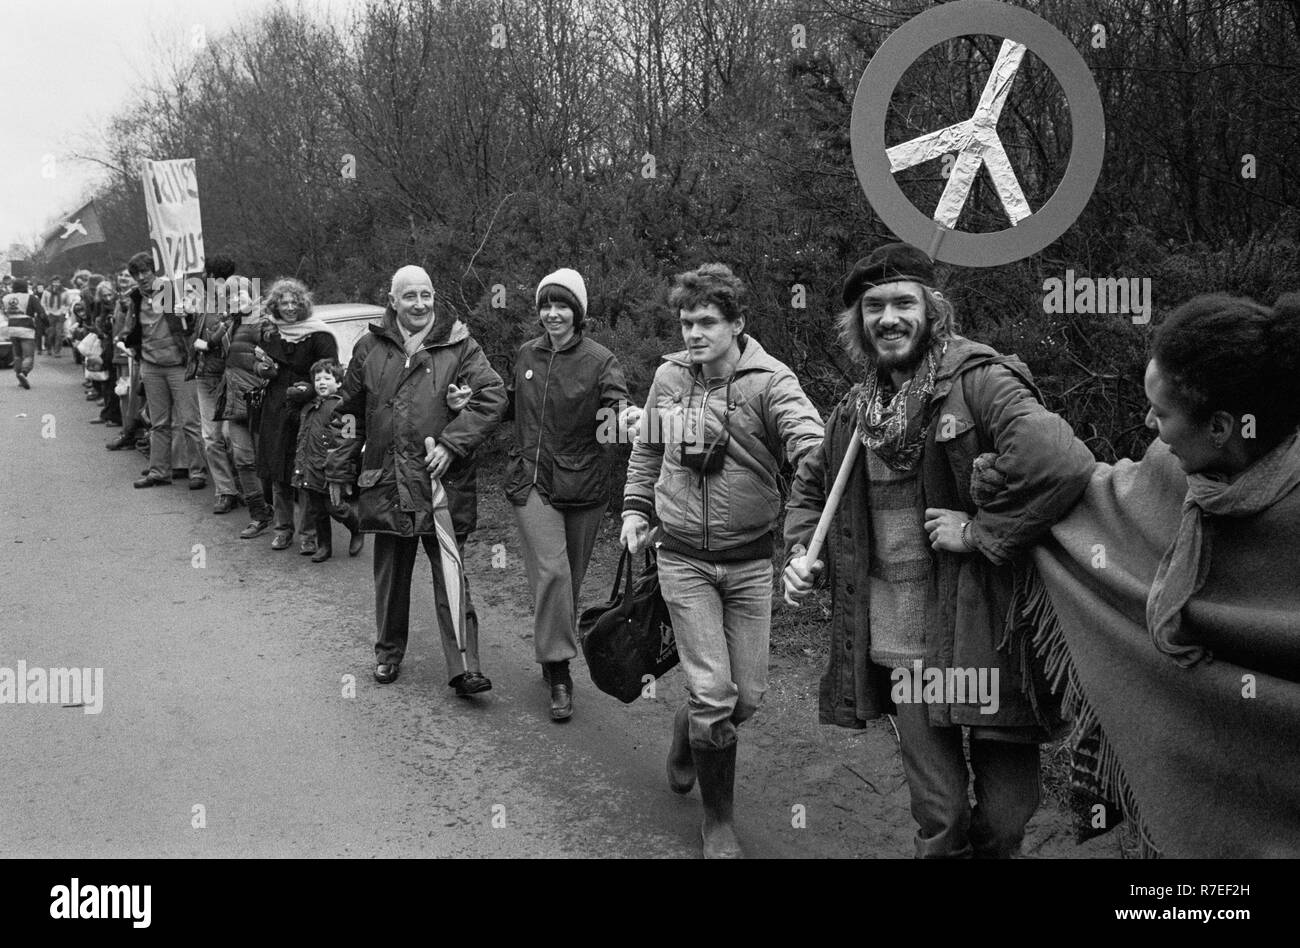 Anti-nucleare e CND sostenitori formano una catena umana al di fuori di Greenham Common US Air Force Base, Berkshire, Venerdì Santo 1983. Immagini Stock